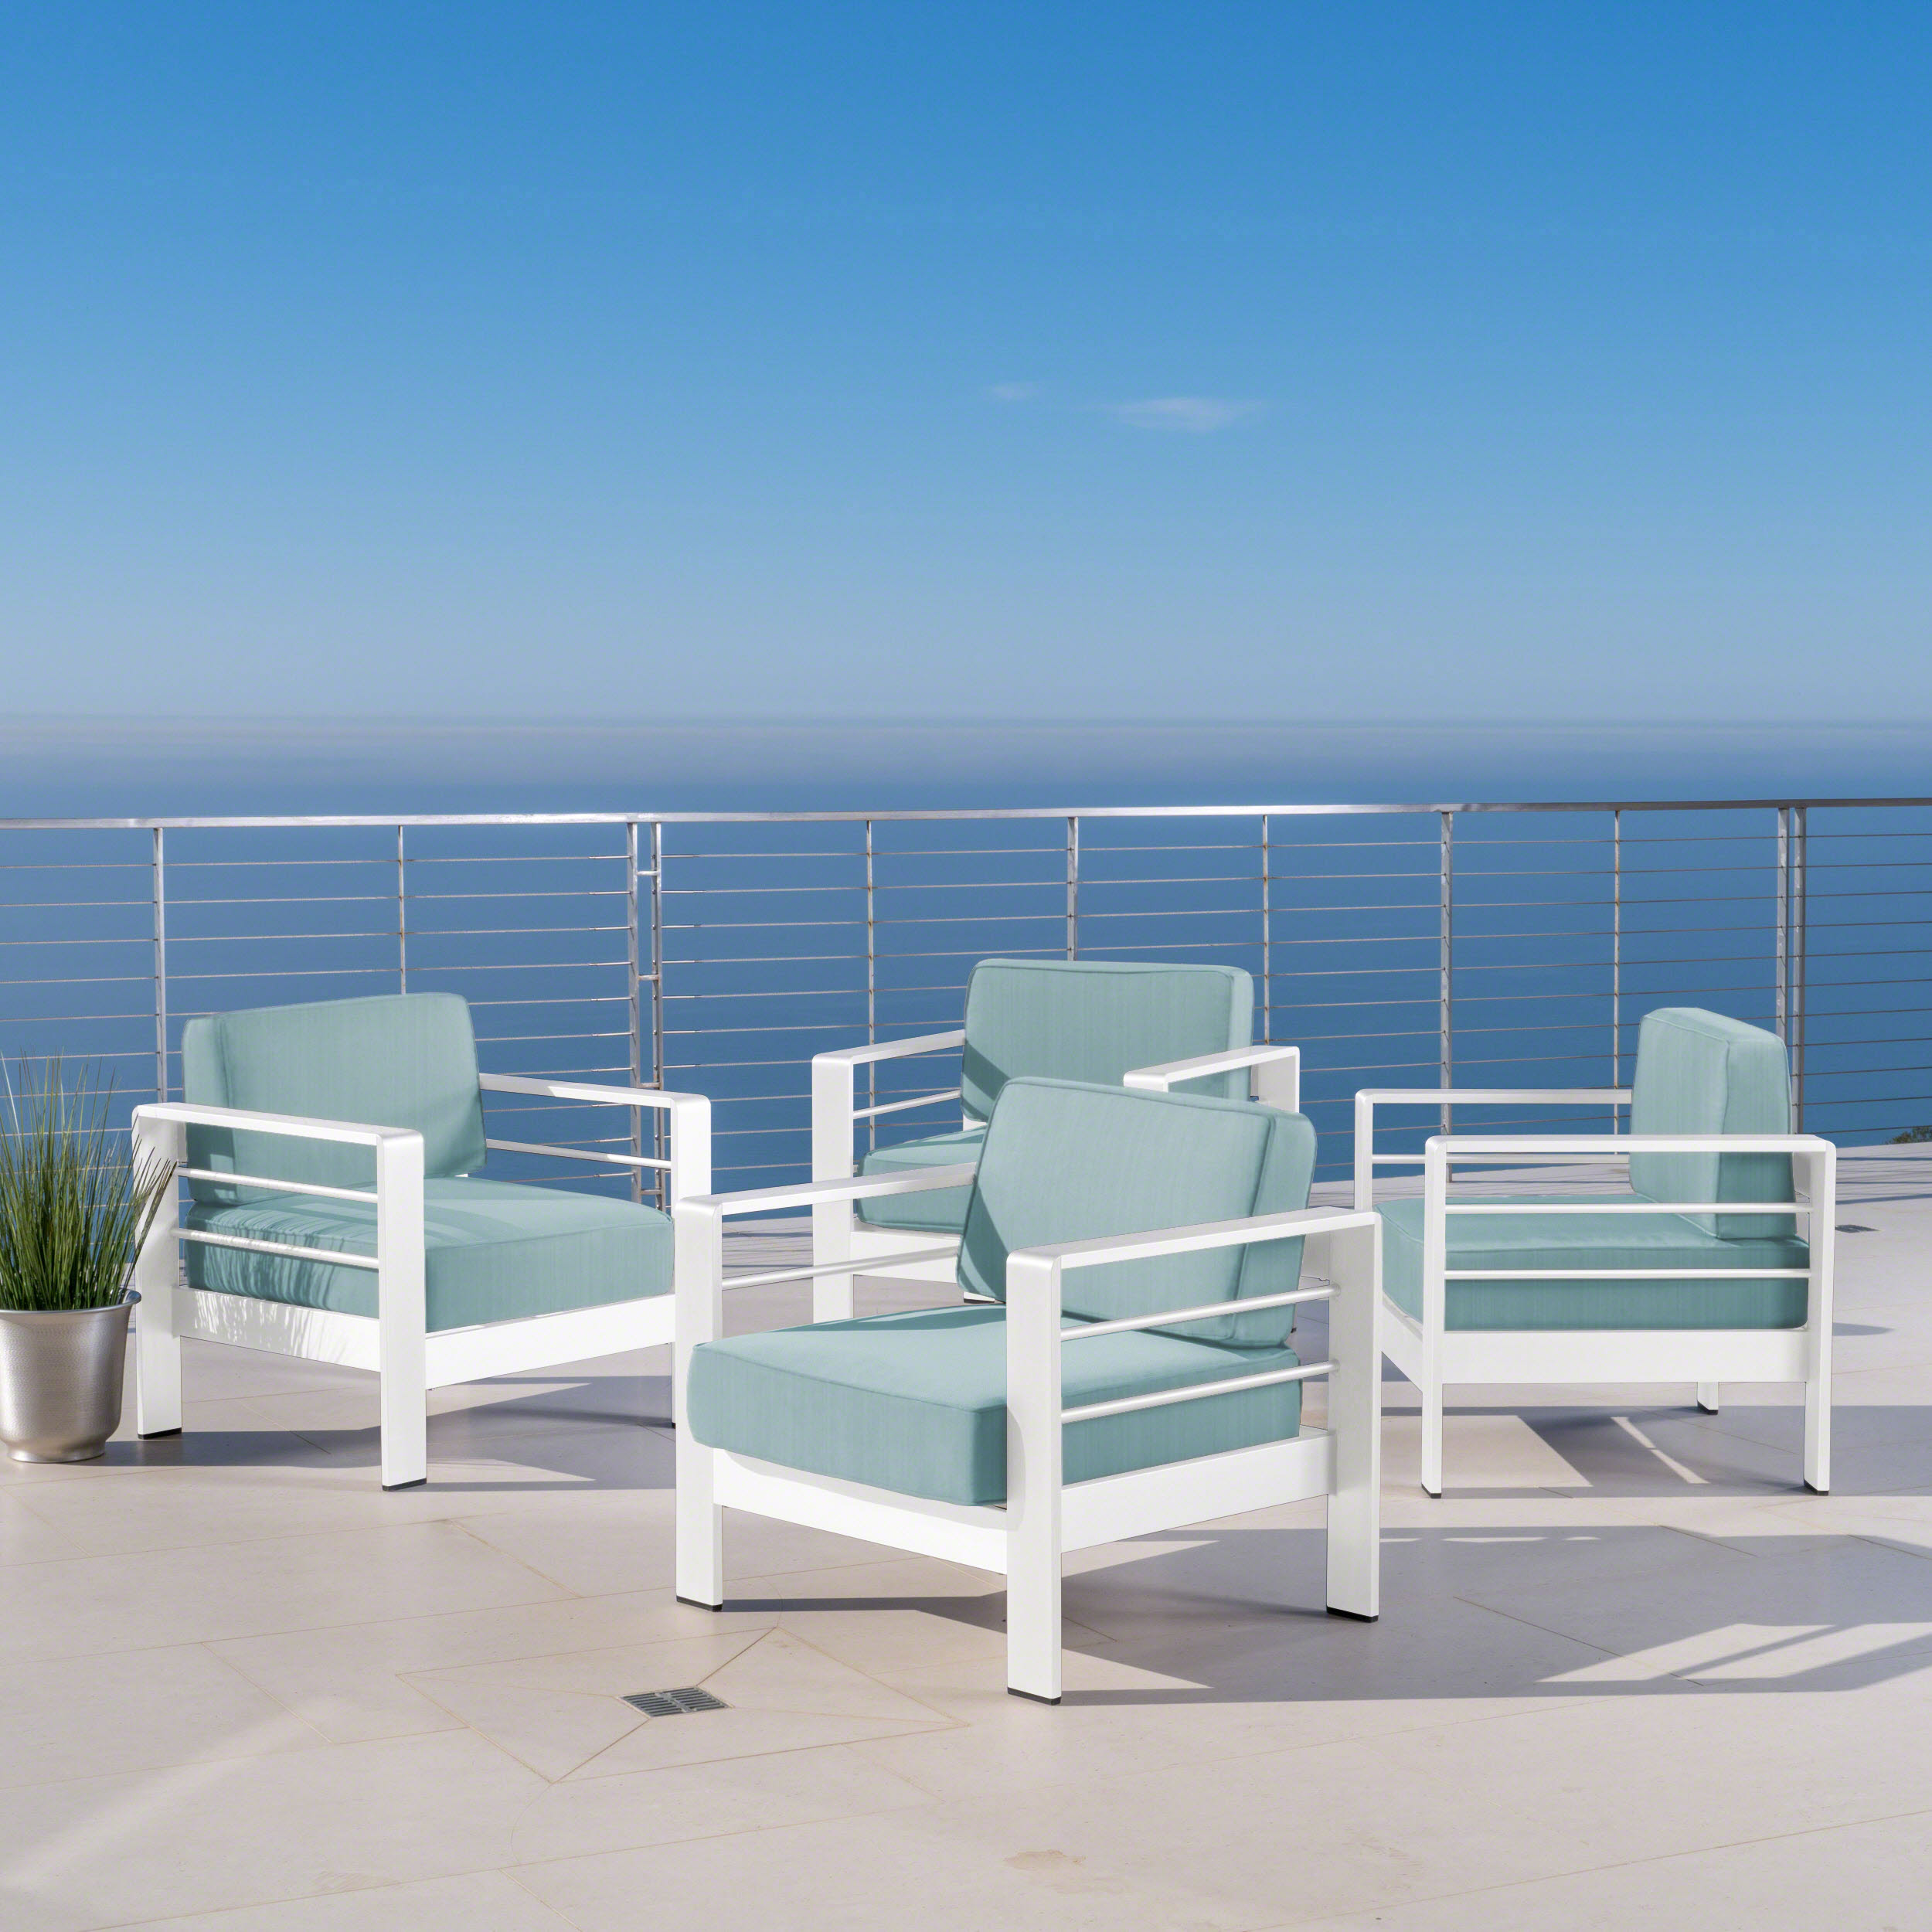 Crested Bay Outdoor Aluminum Club Chairs with Water Resistant Cushions, Set of 4, White and Teal